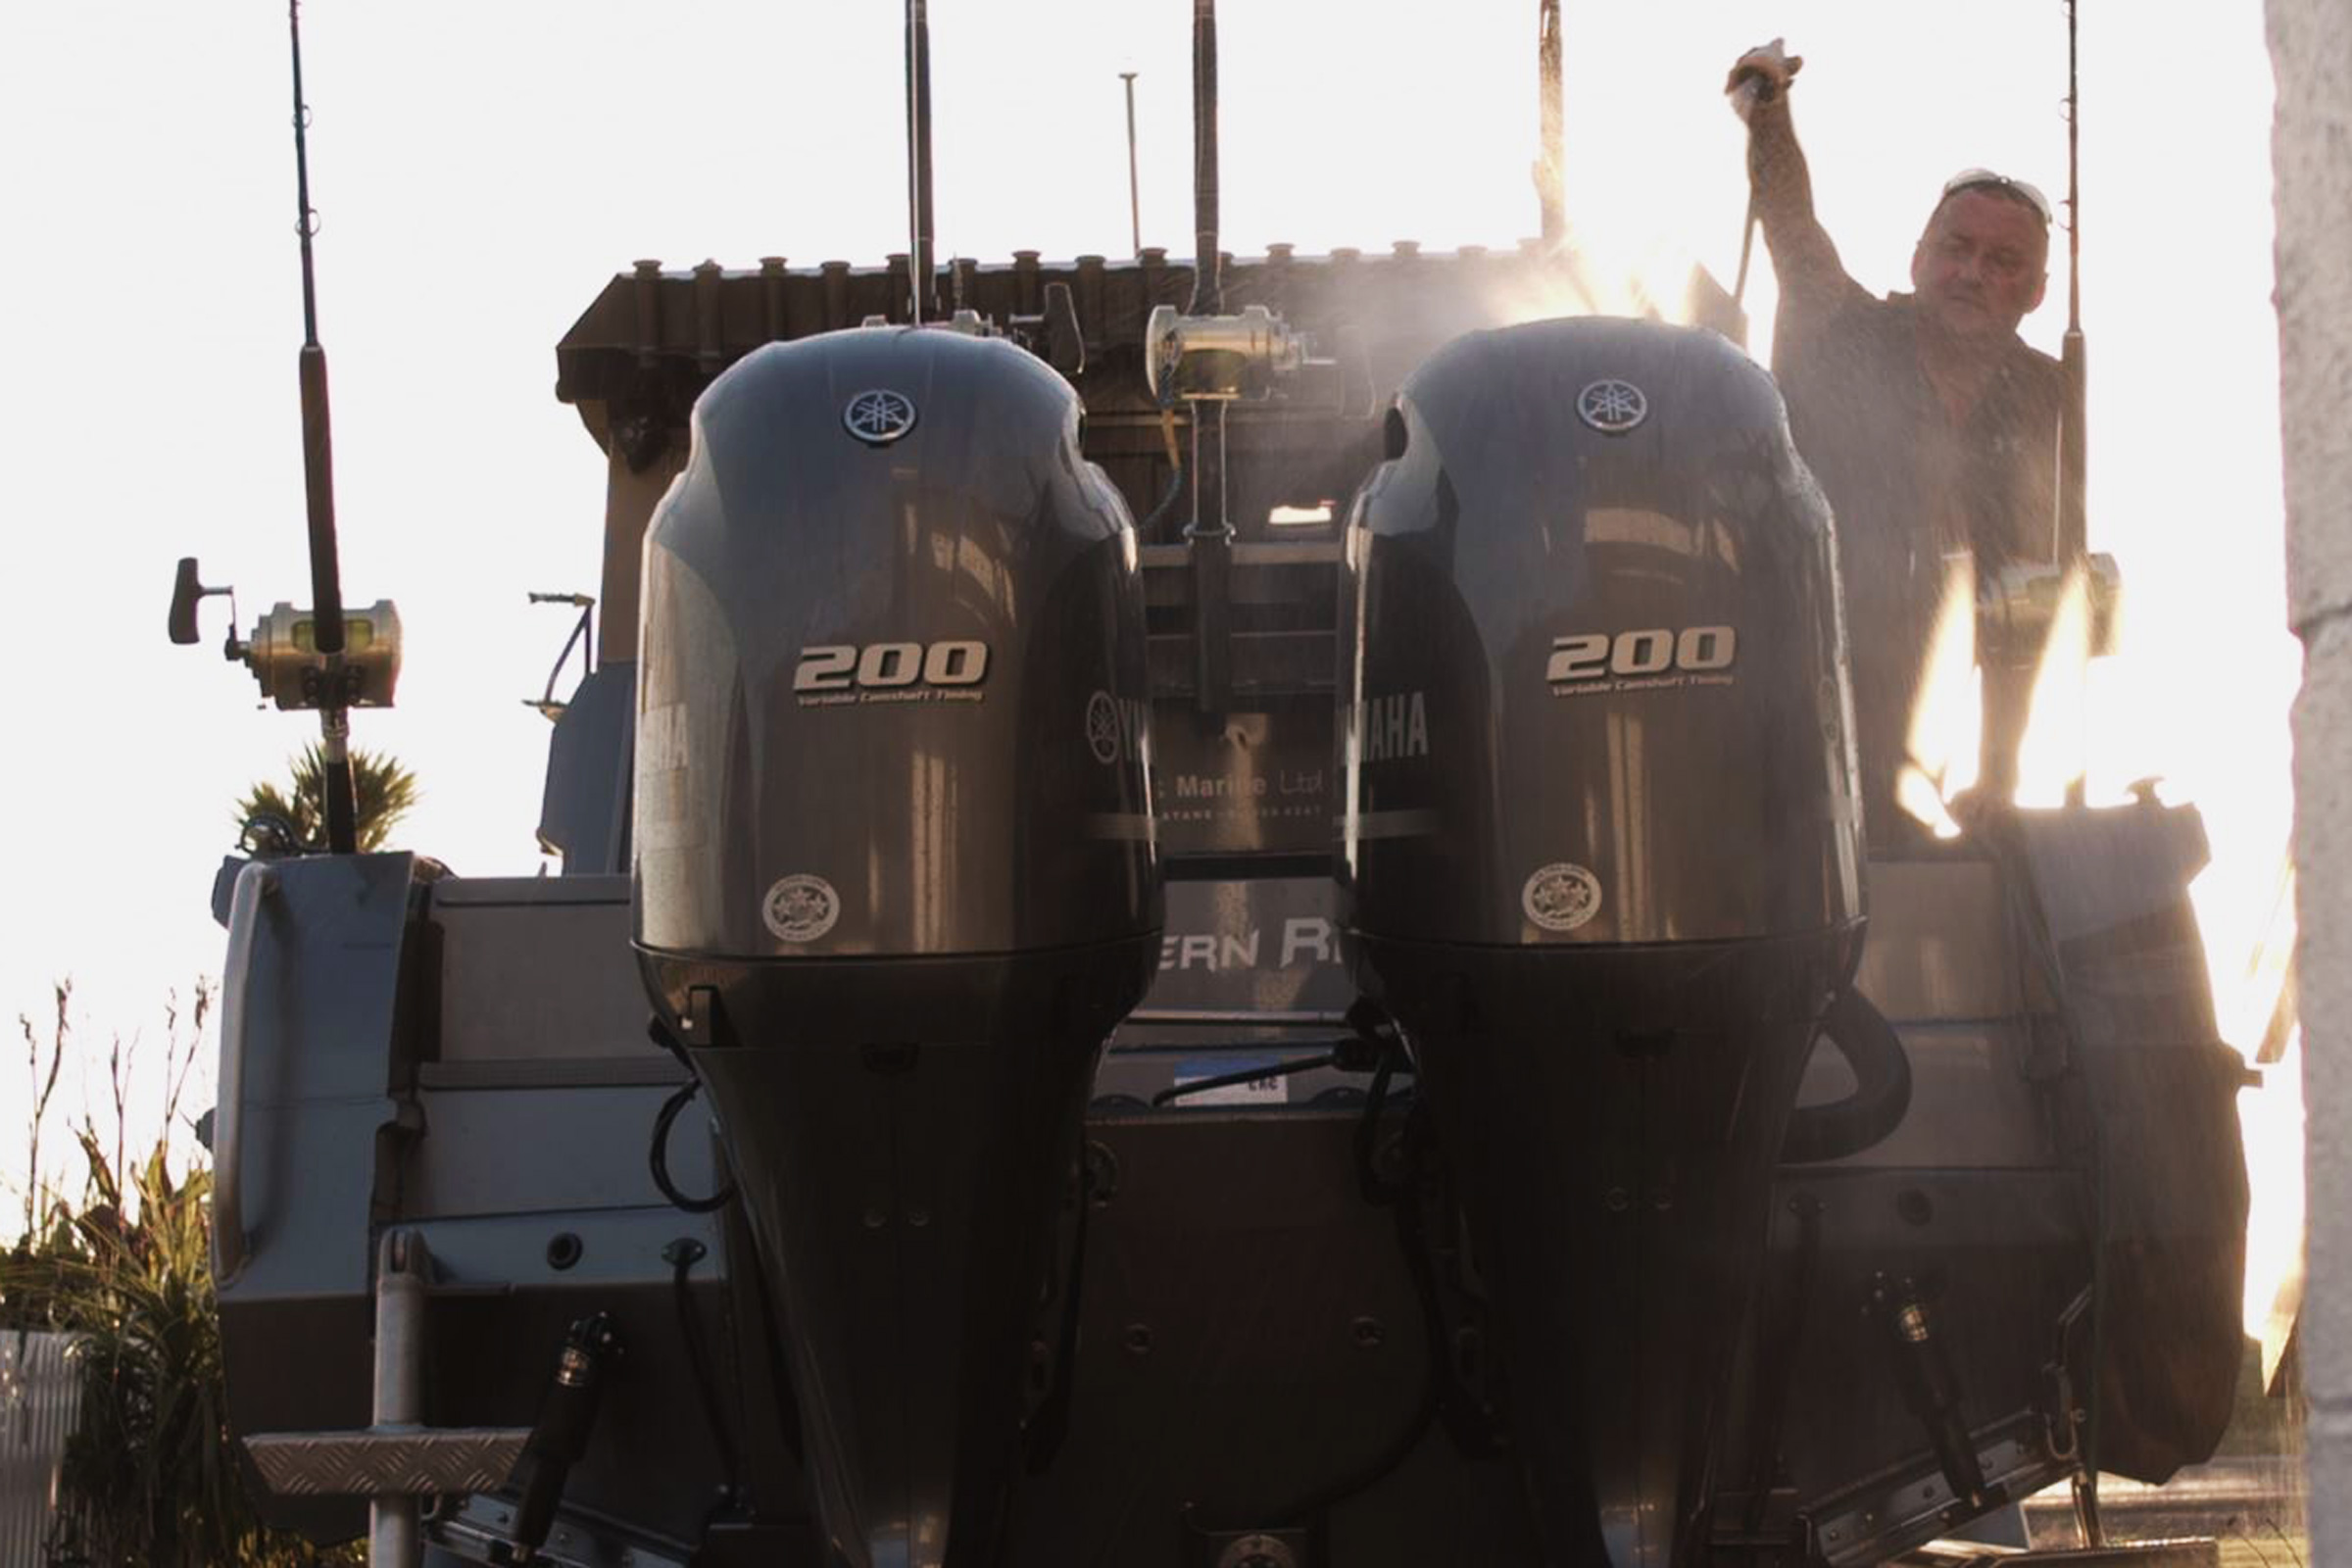 Twins vs single outboards.  What's best?